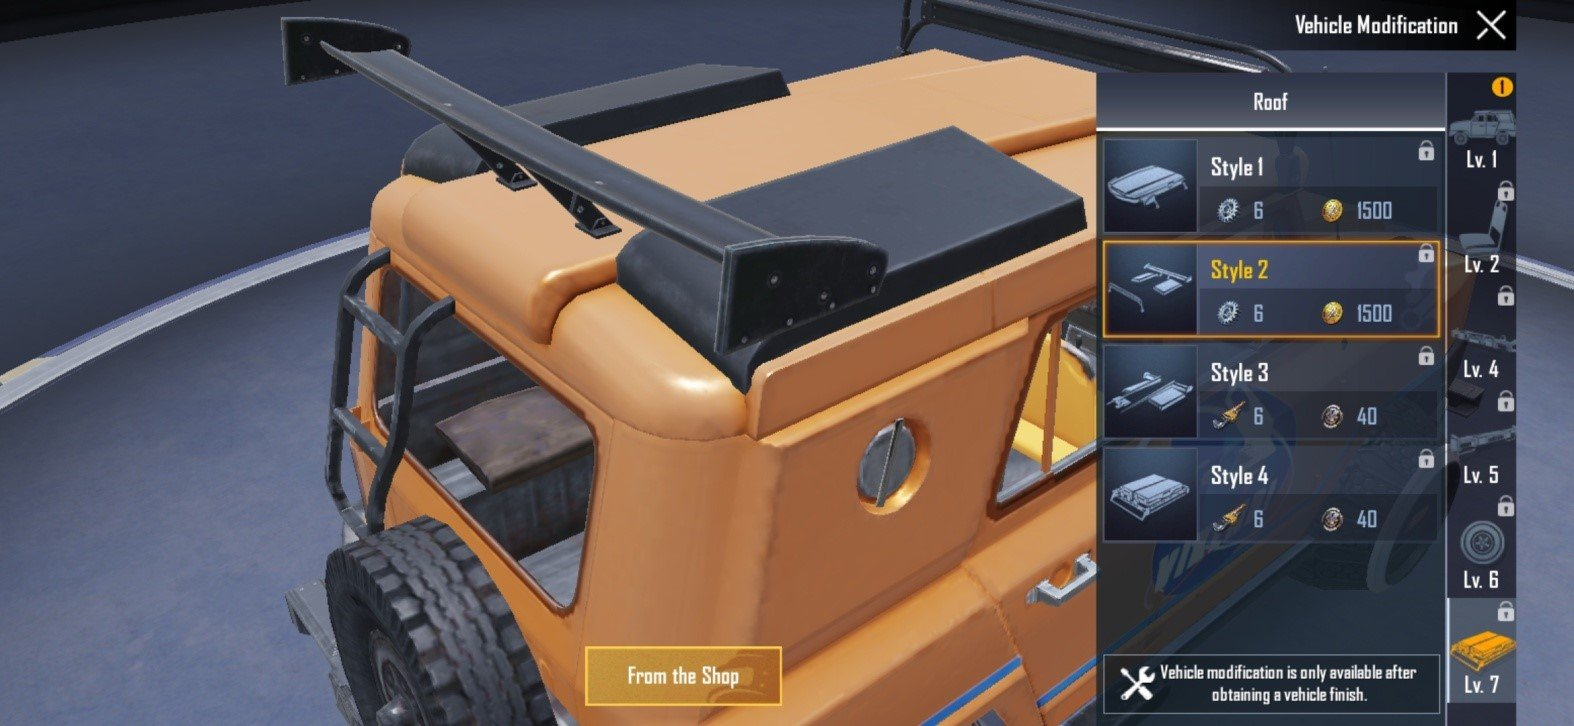 Vehicle-roof-style-2